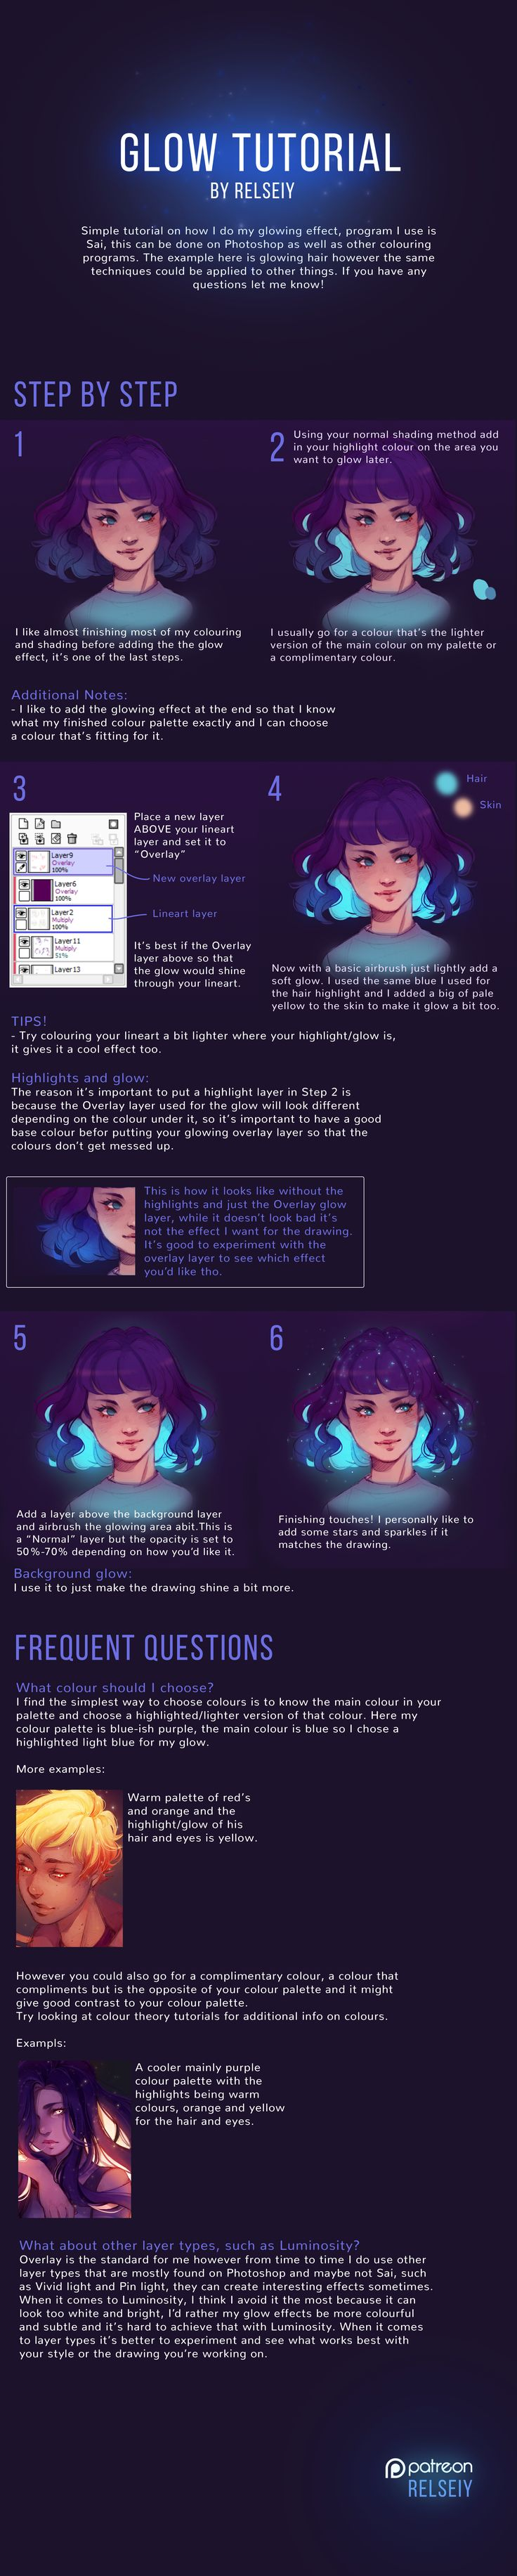 Official Post from Relseiy: Full version of my Glow tutorial, this isn't the only way of achieving a glowing effect but it's just how I do it, hopefully you'll find this helpful in some way! Comment what other tutorials you'd like to see next! Whenever I post a tutorial I'll be making a more detailed version here for Patreon,